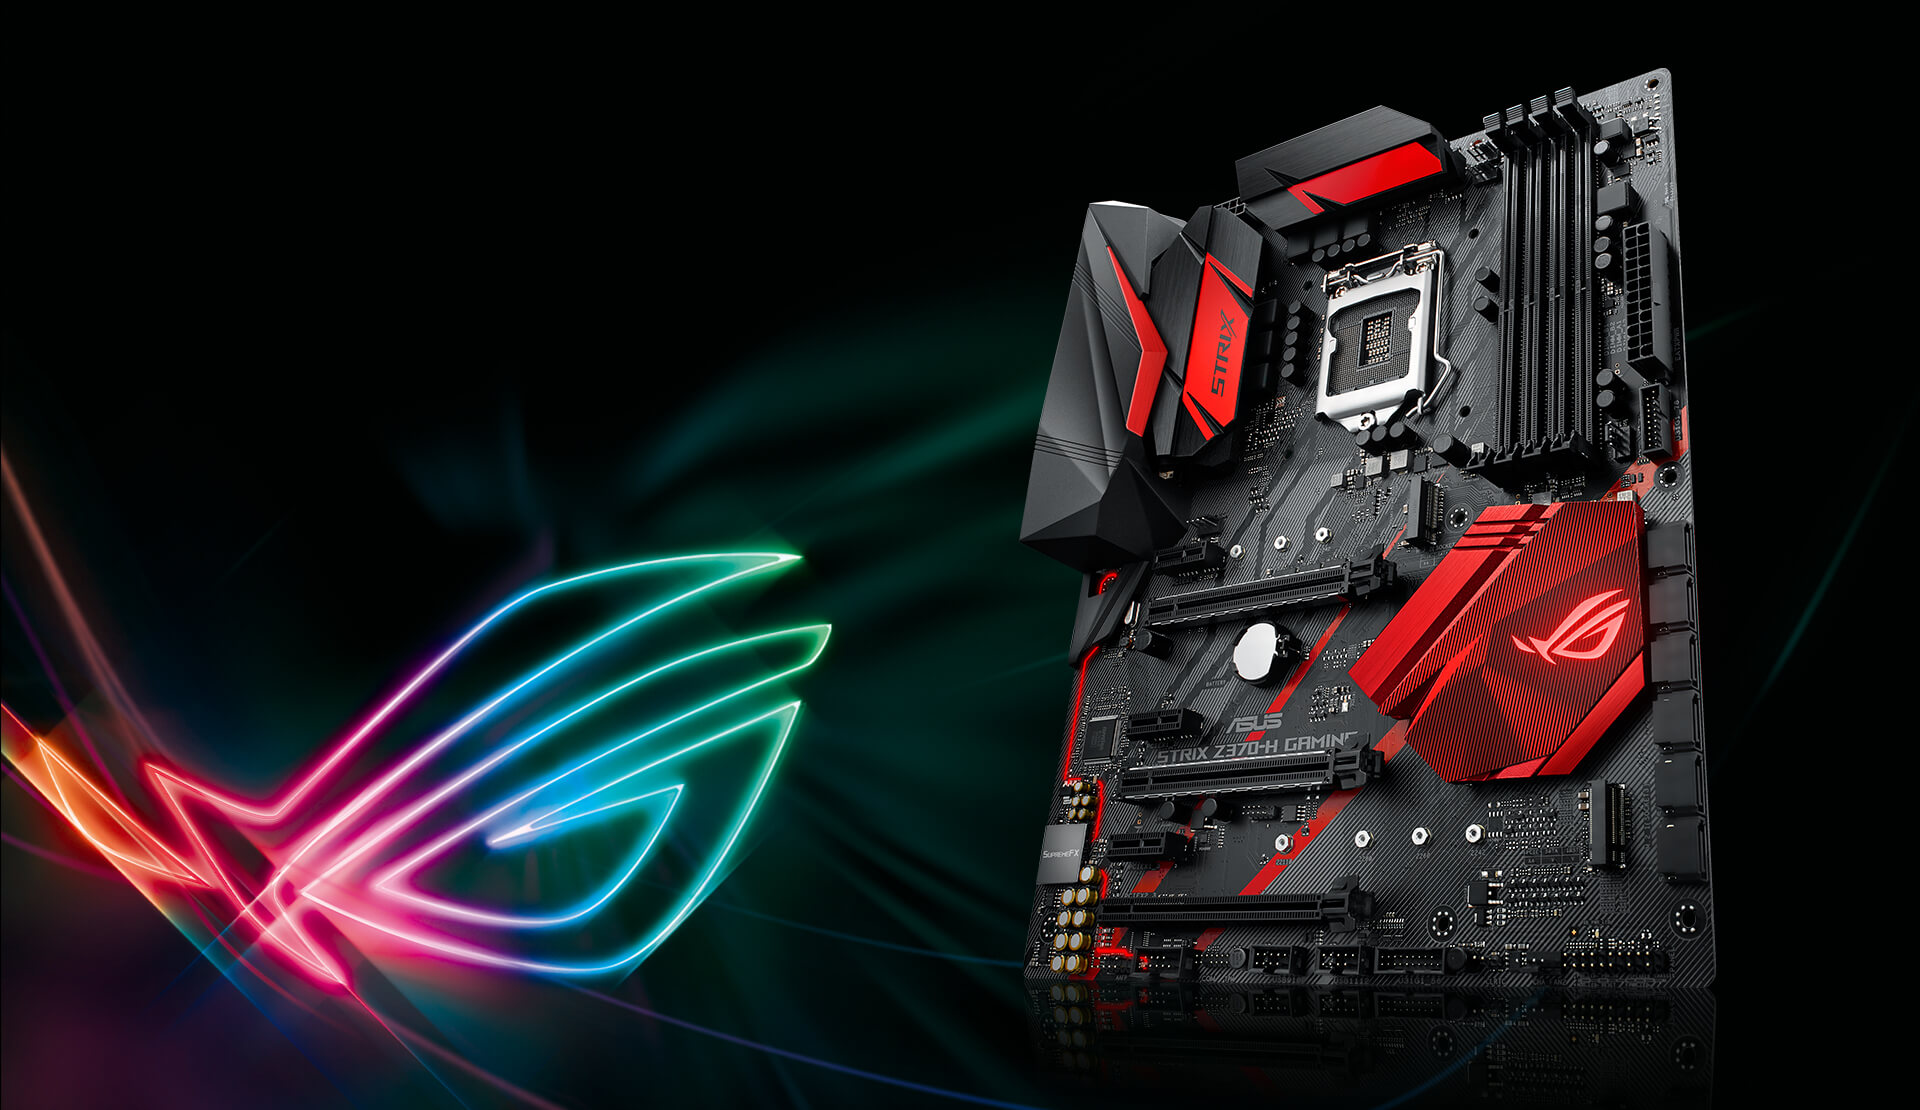 Rog Strix Z370 H Gaming Motherboards Asus Global Head Case Designs Black Circuit Boards Hard Back For Htc One Mini Factor In The Atmospheric Red Glow From Built Leds And Superior Supremefx Audio Youll Know That Looks Great Sounds